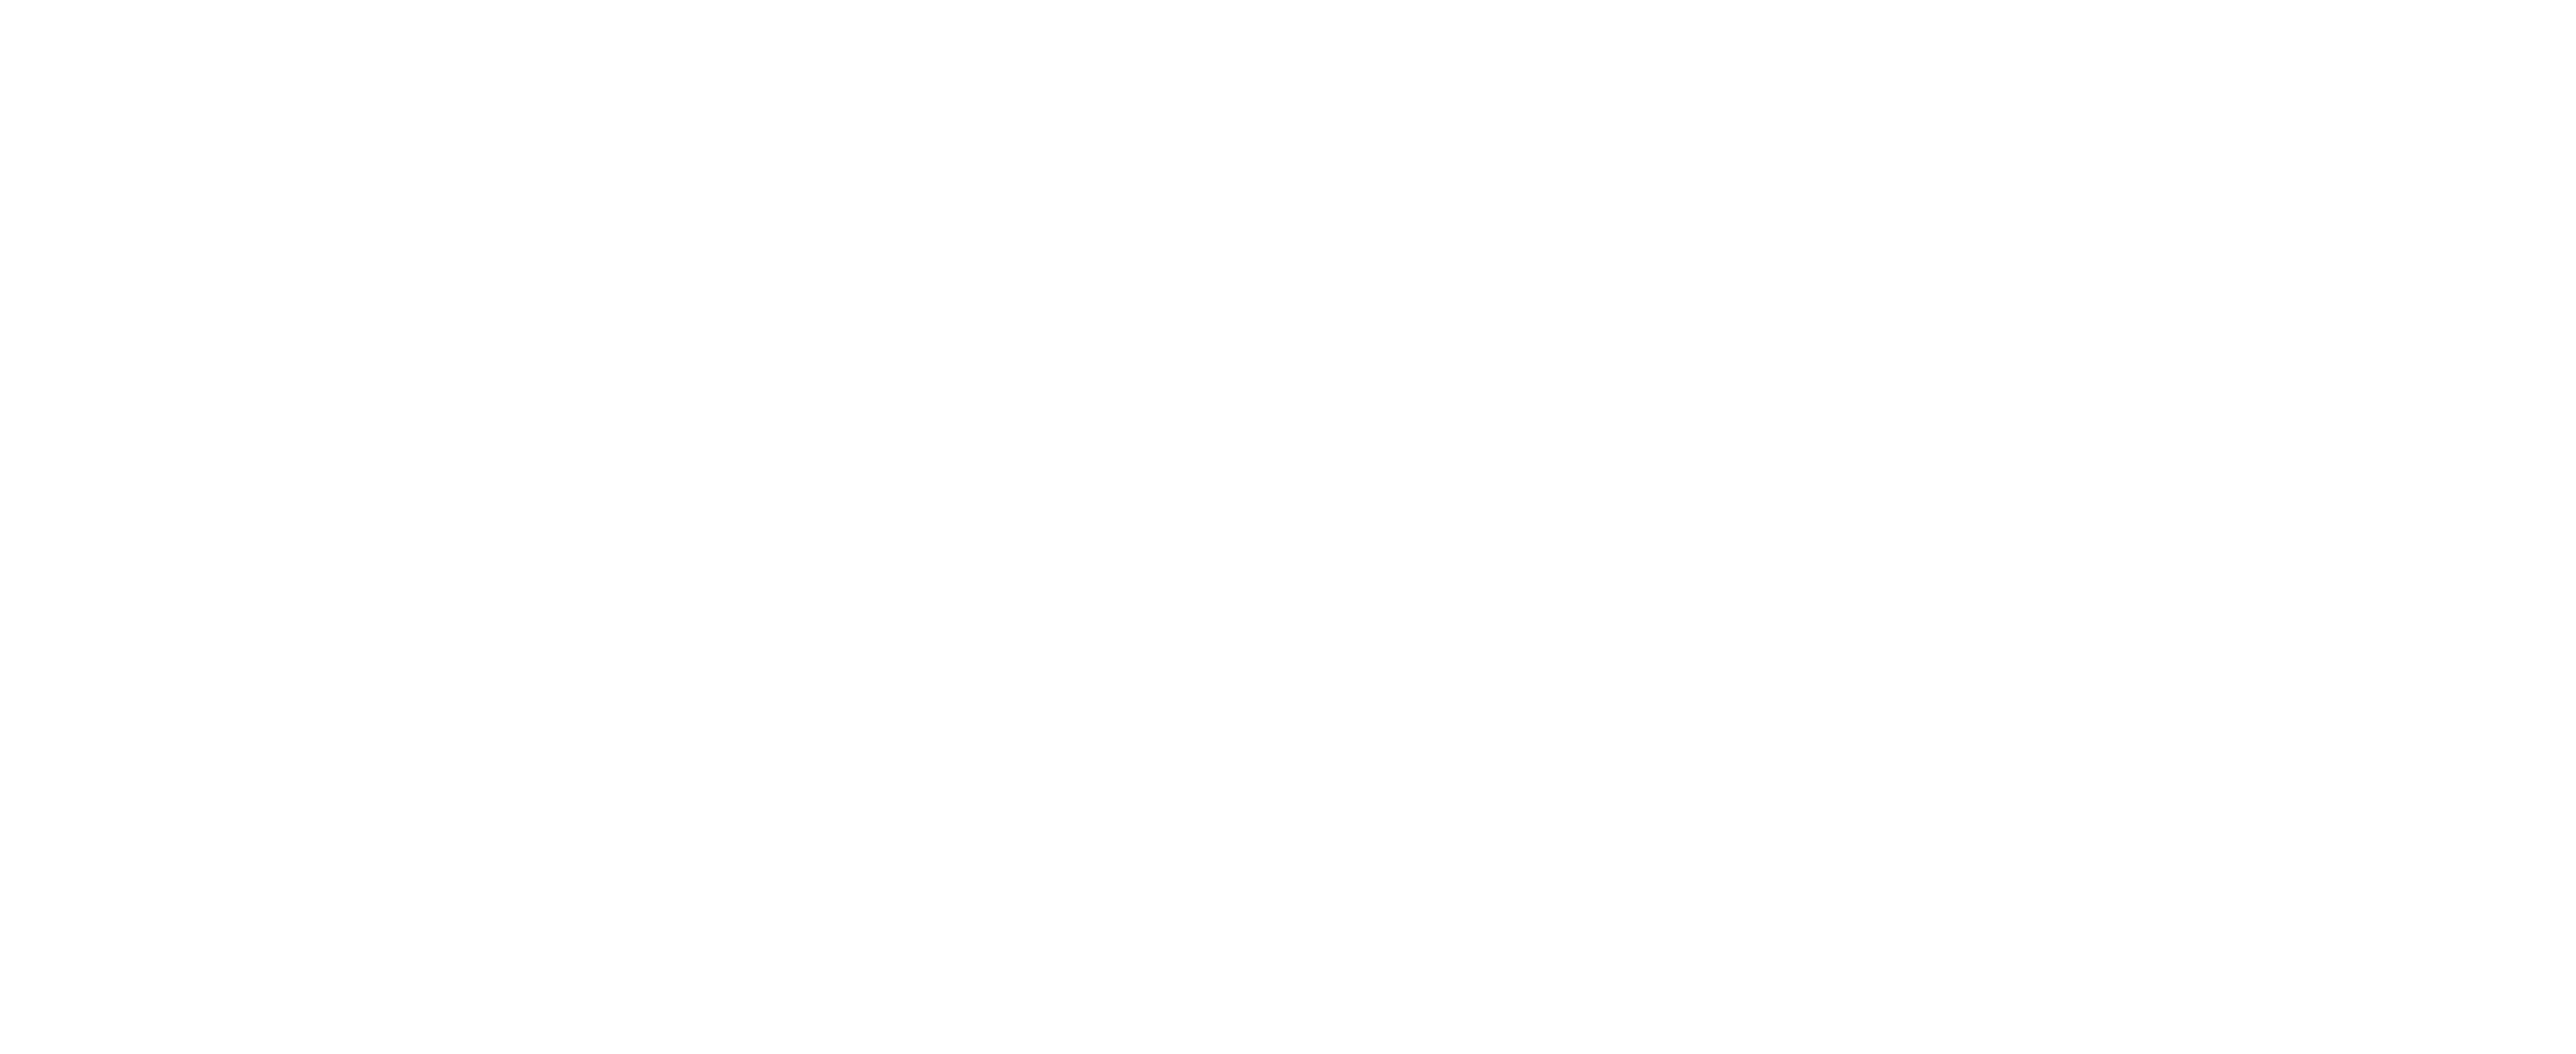 Lytham Festival Official Afterparty Logo White